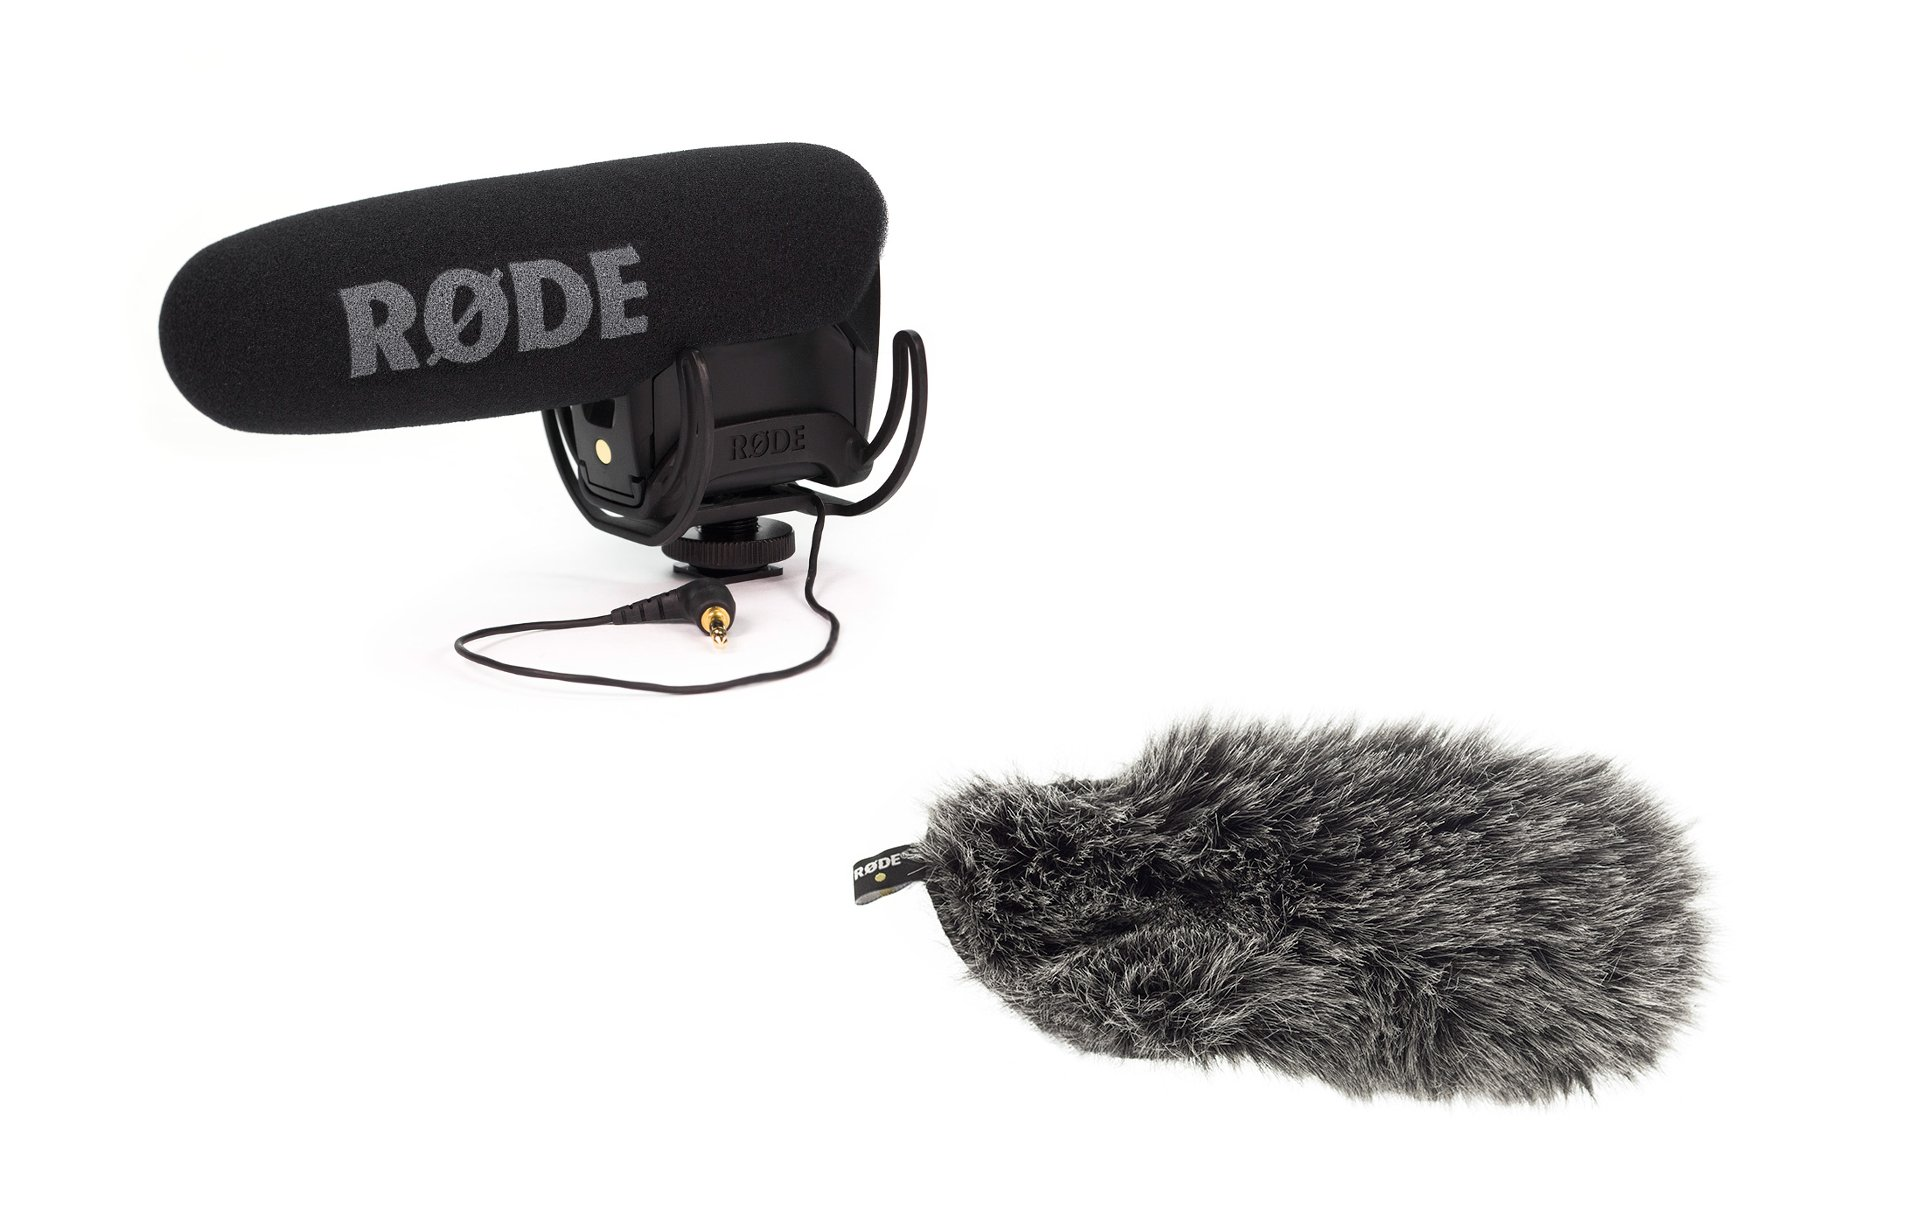 Rode Video Mic Pro R With Free Deadcat Offer